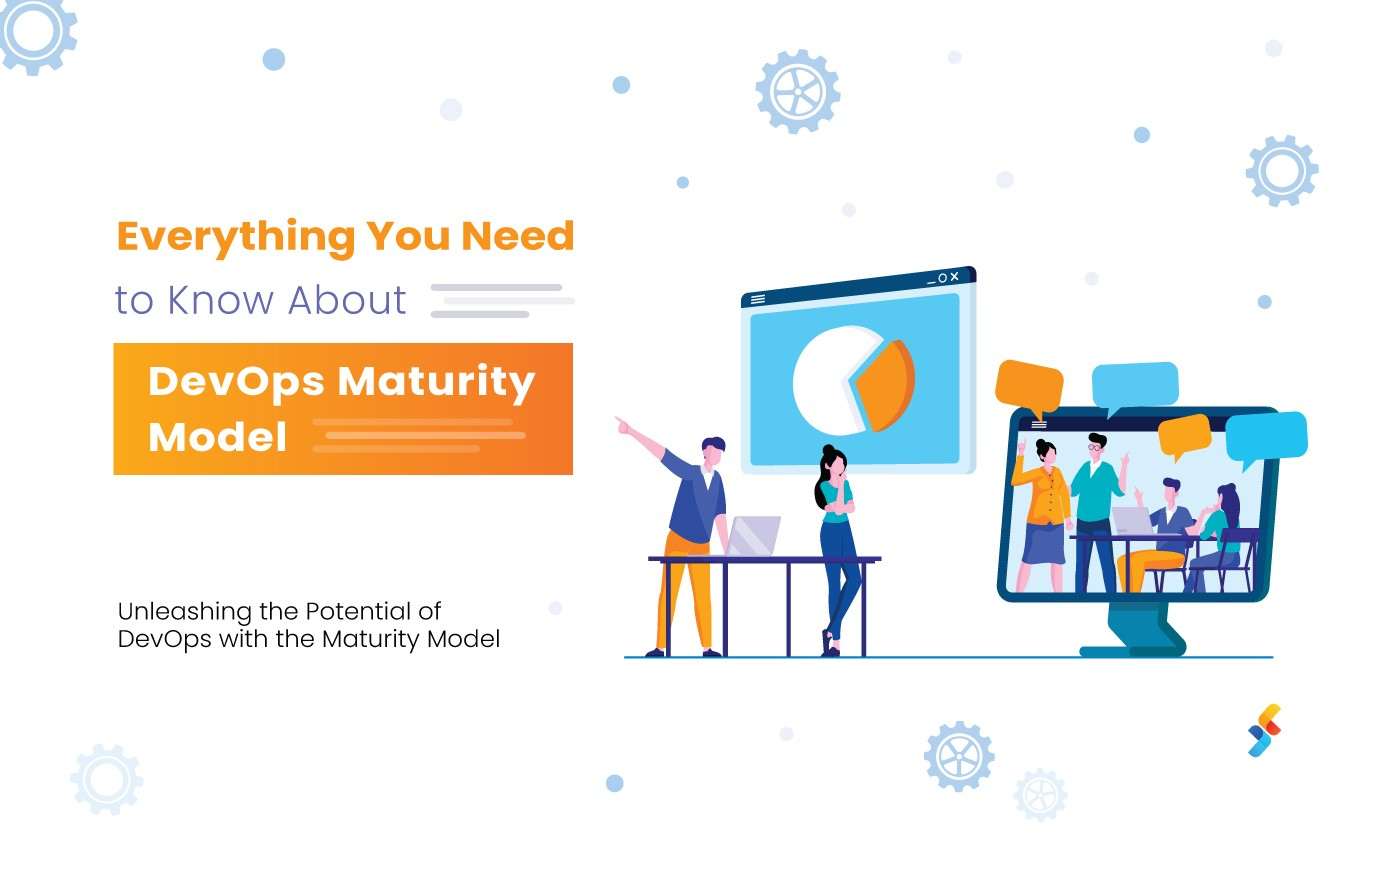 Everything You Need to Know About DevOps Maturity Model